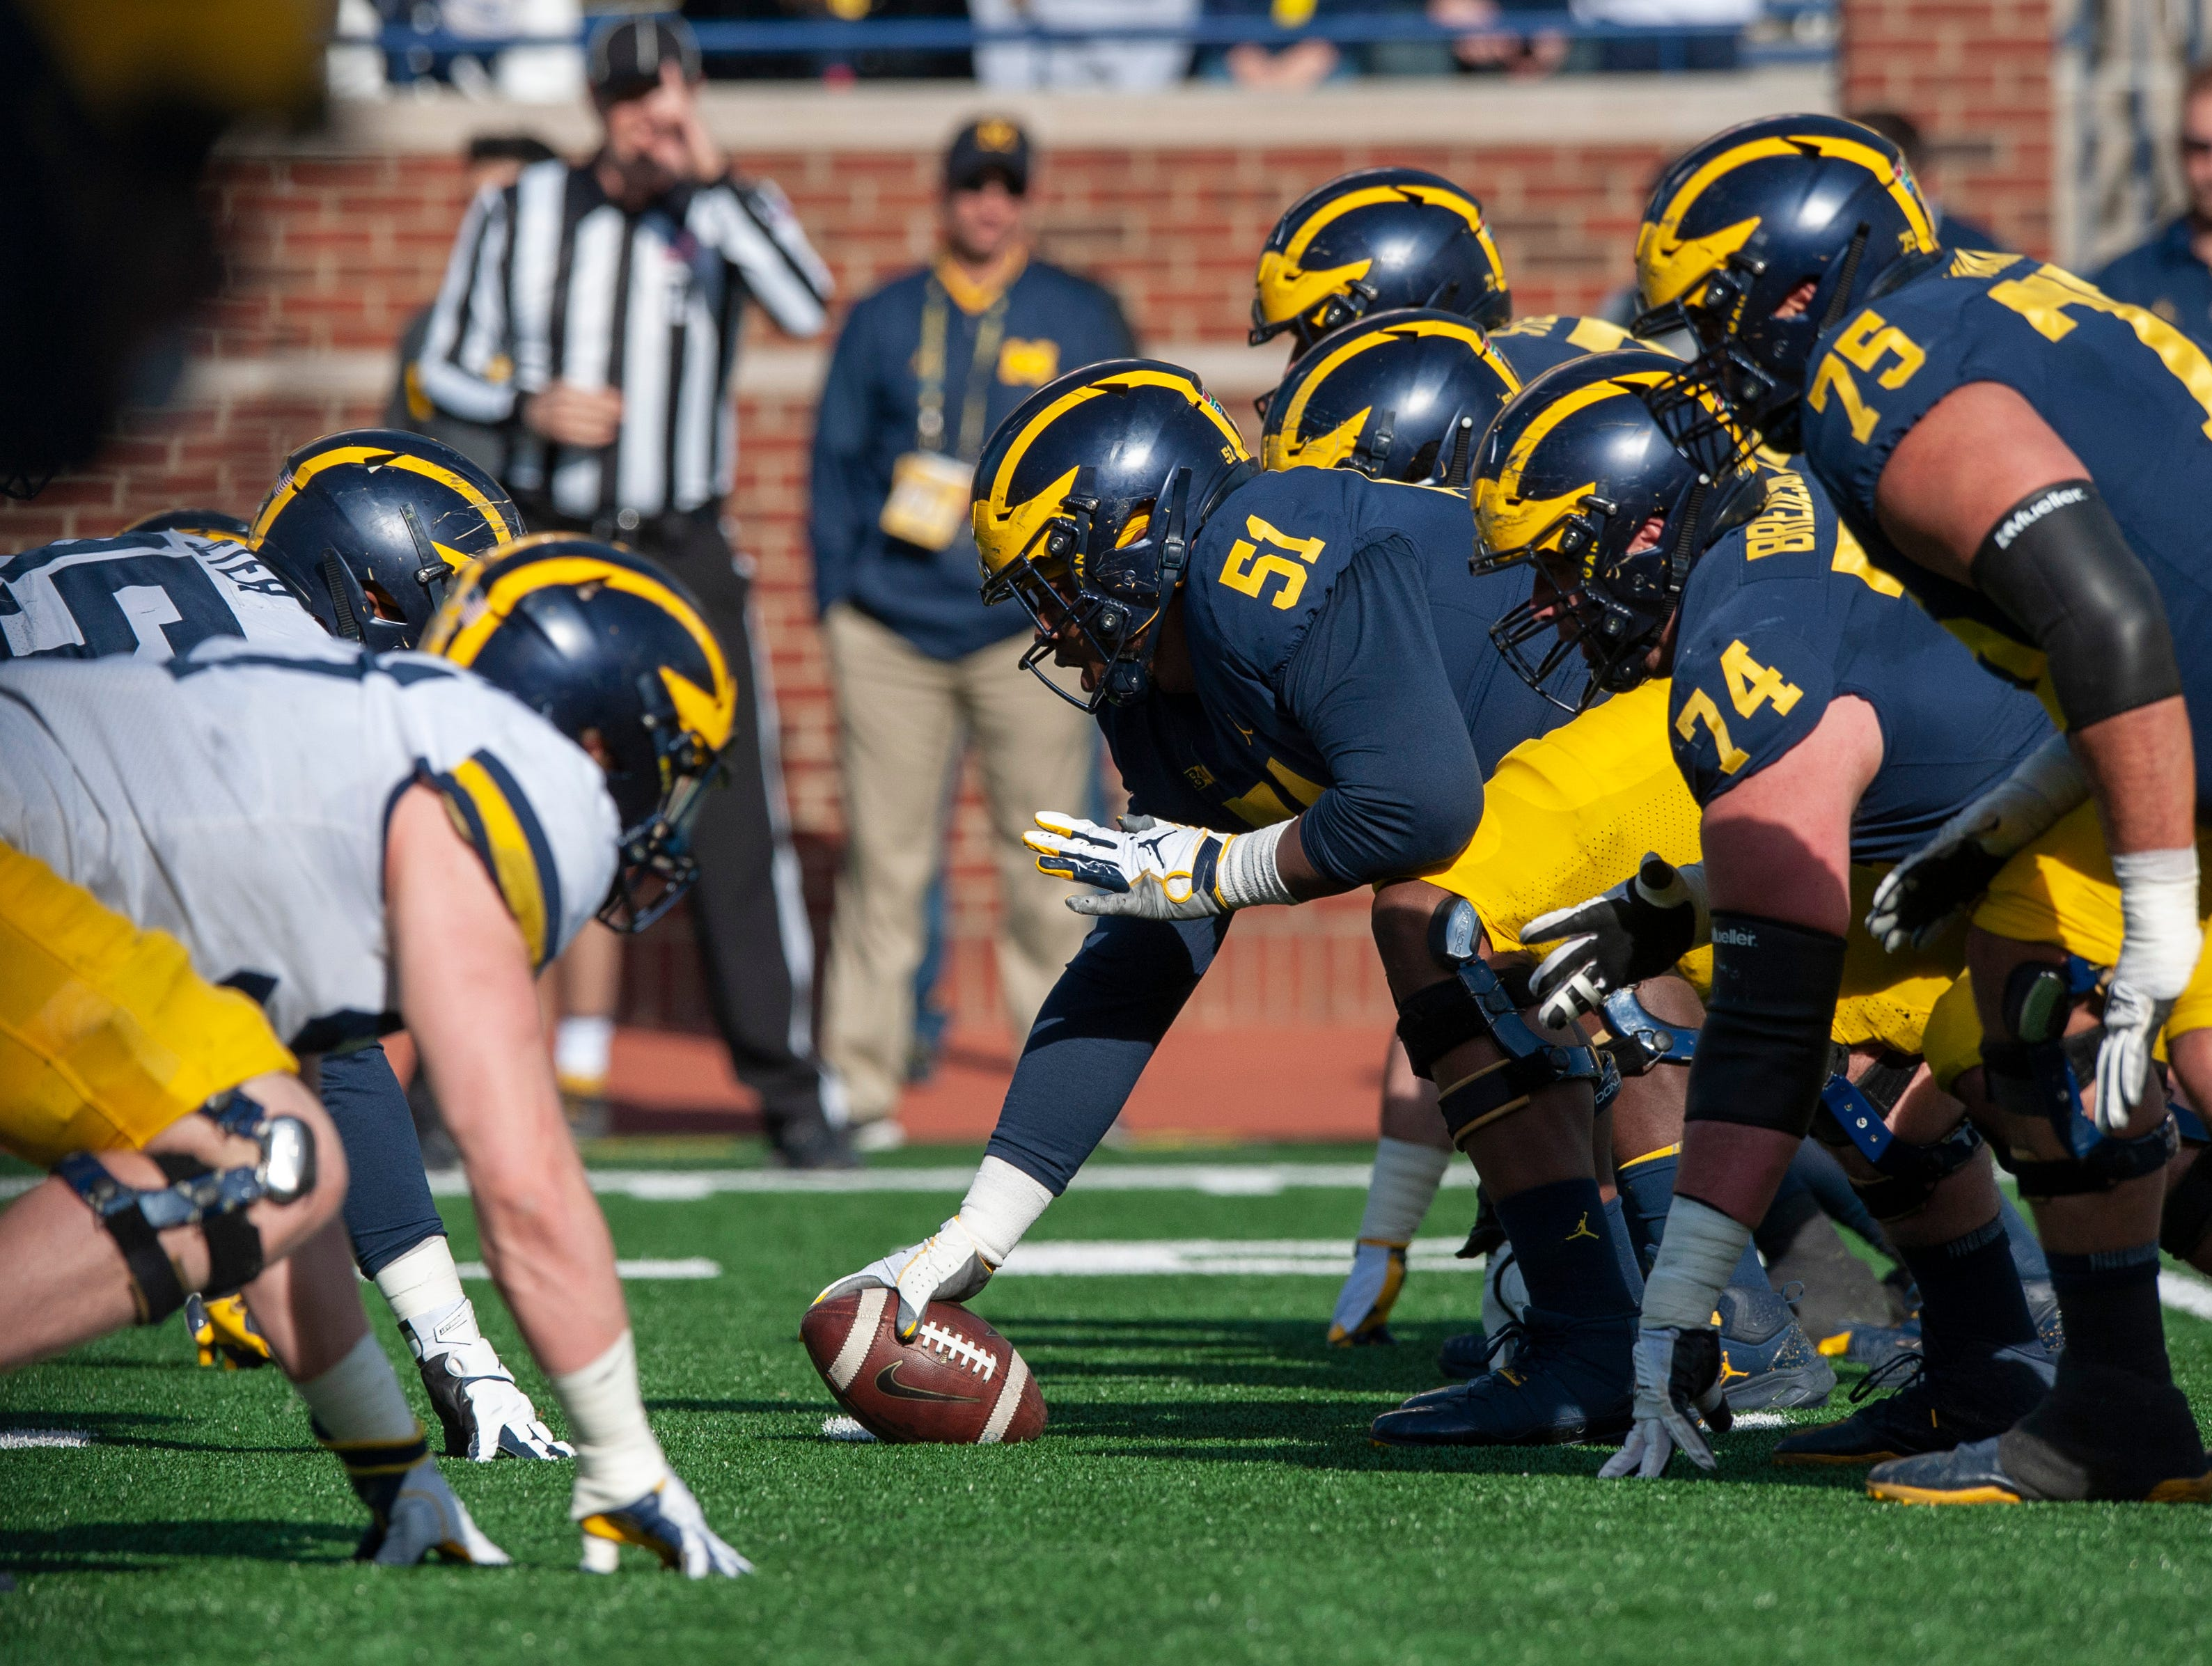 Michigan center Cesar Ruiz (51) gets ready to snap the football as the Michigan offense lines up against the Michigan defense during the 2019 Spring Game at the Big House.